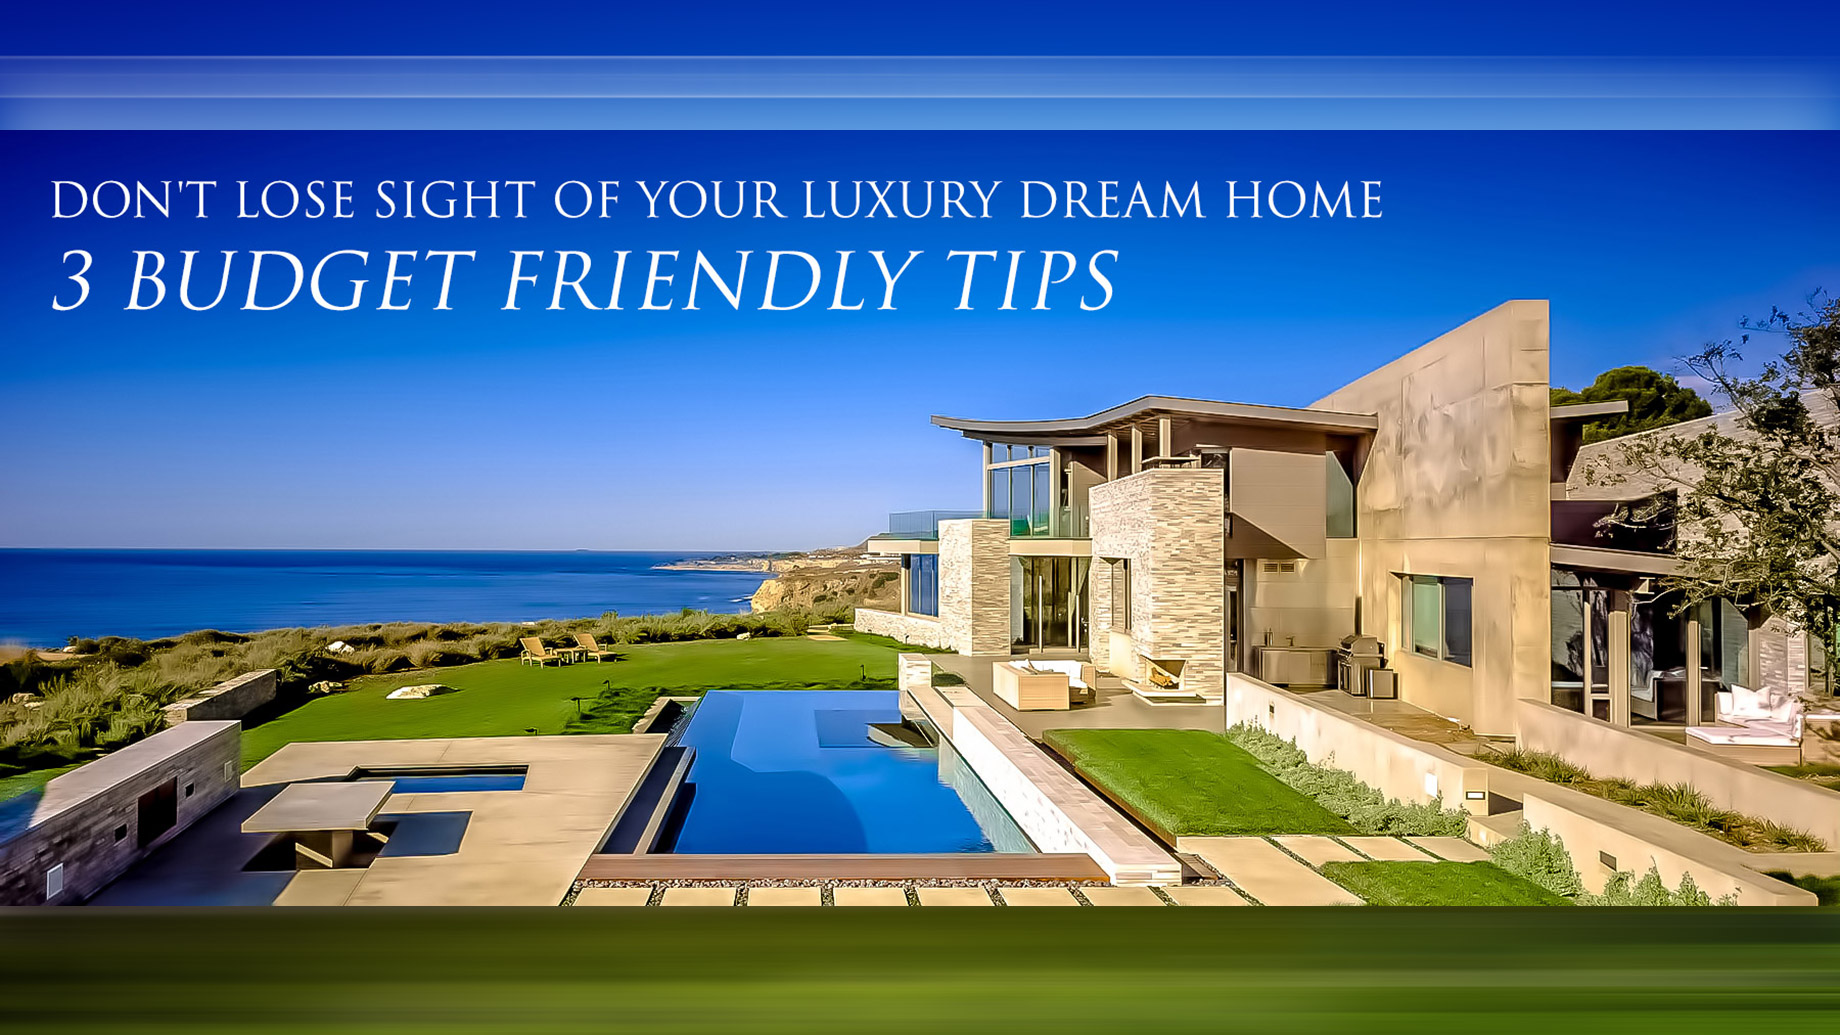 Don't Lose Sight of Your Luxury Dream Home - 3 Budget Friendly Tips